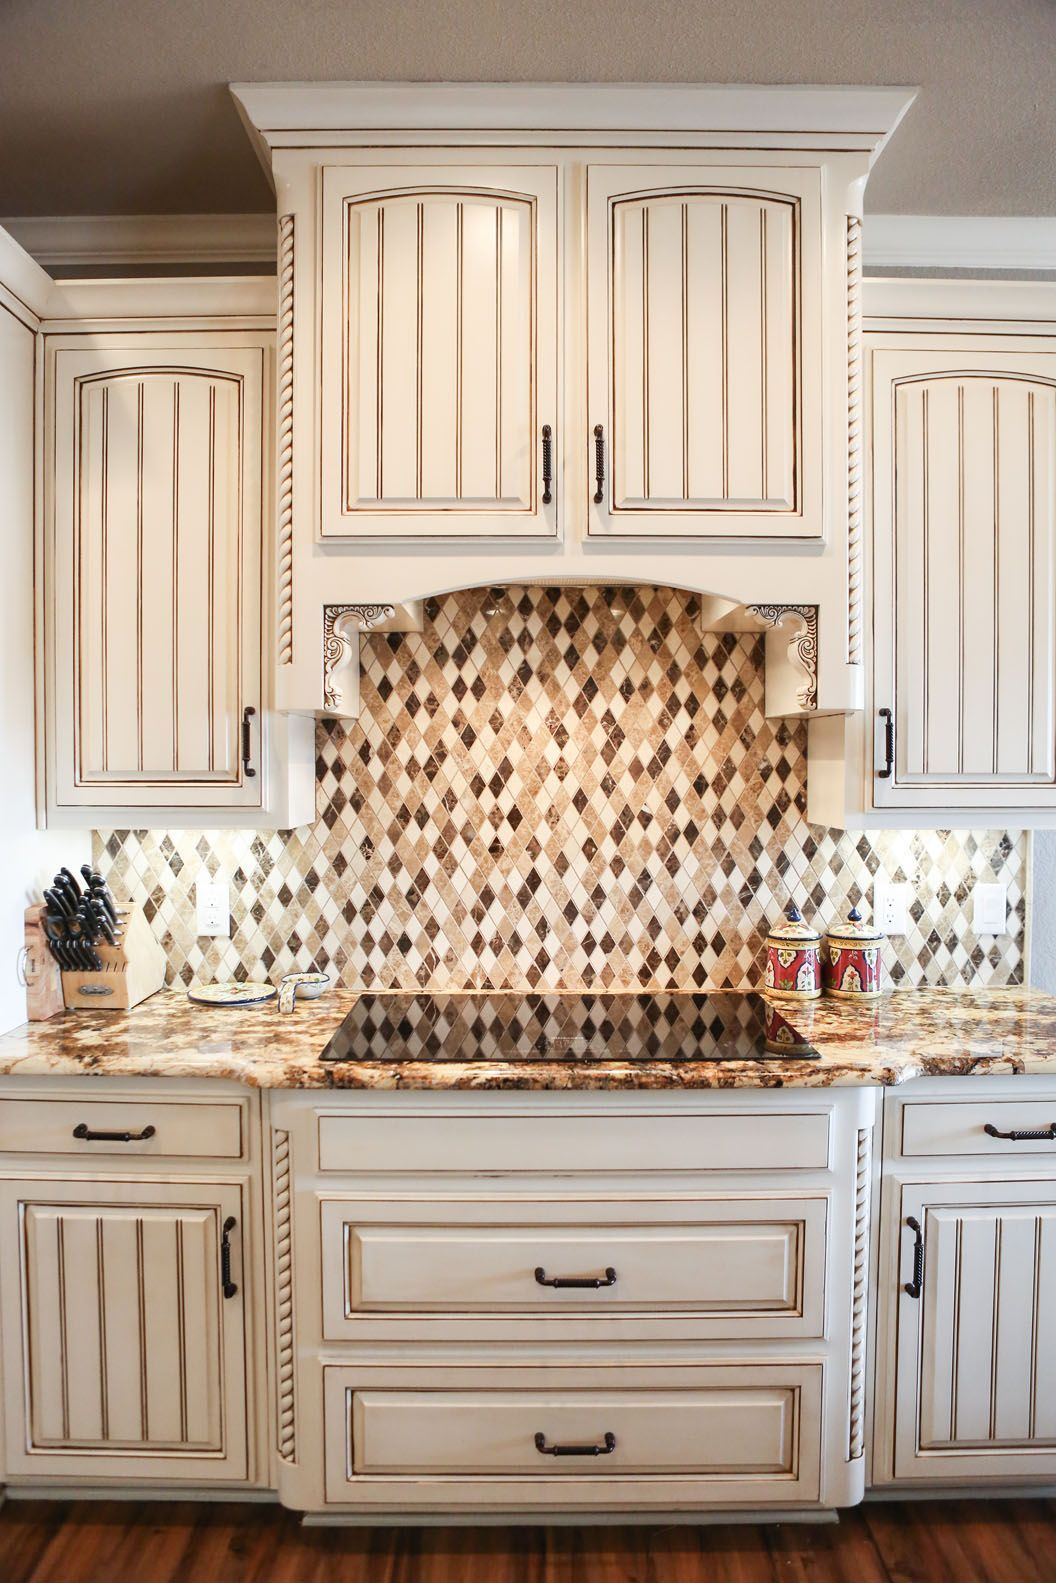 Detail of antique white kitchen cabinets with harlequin diamond